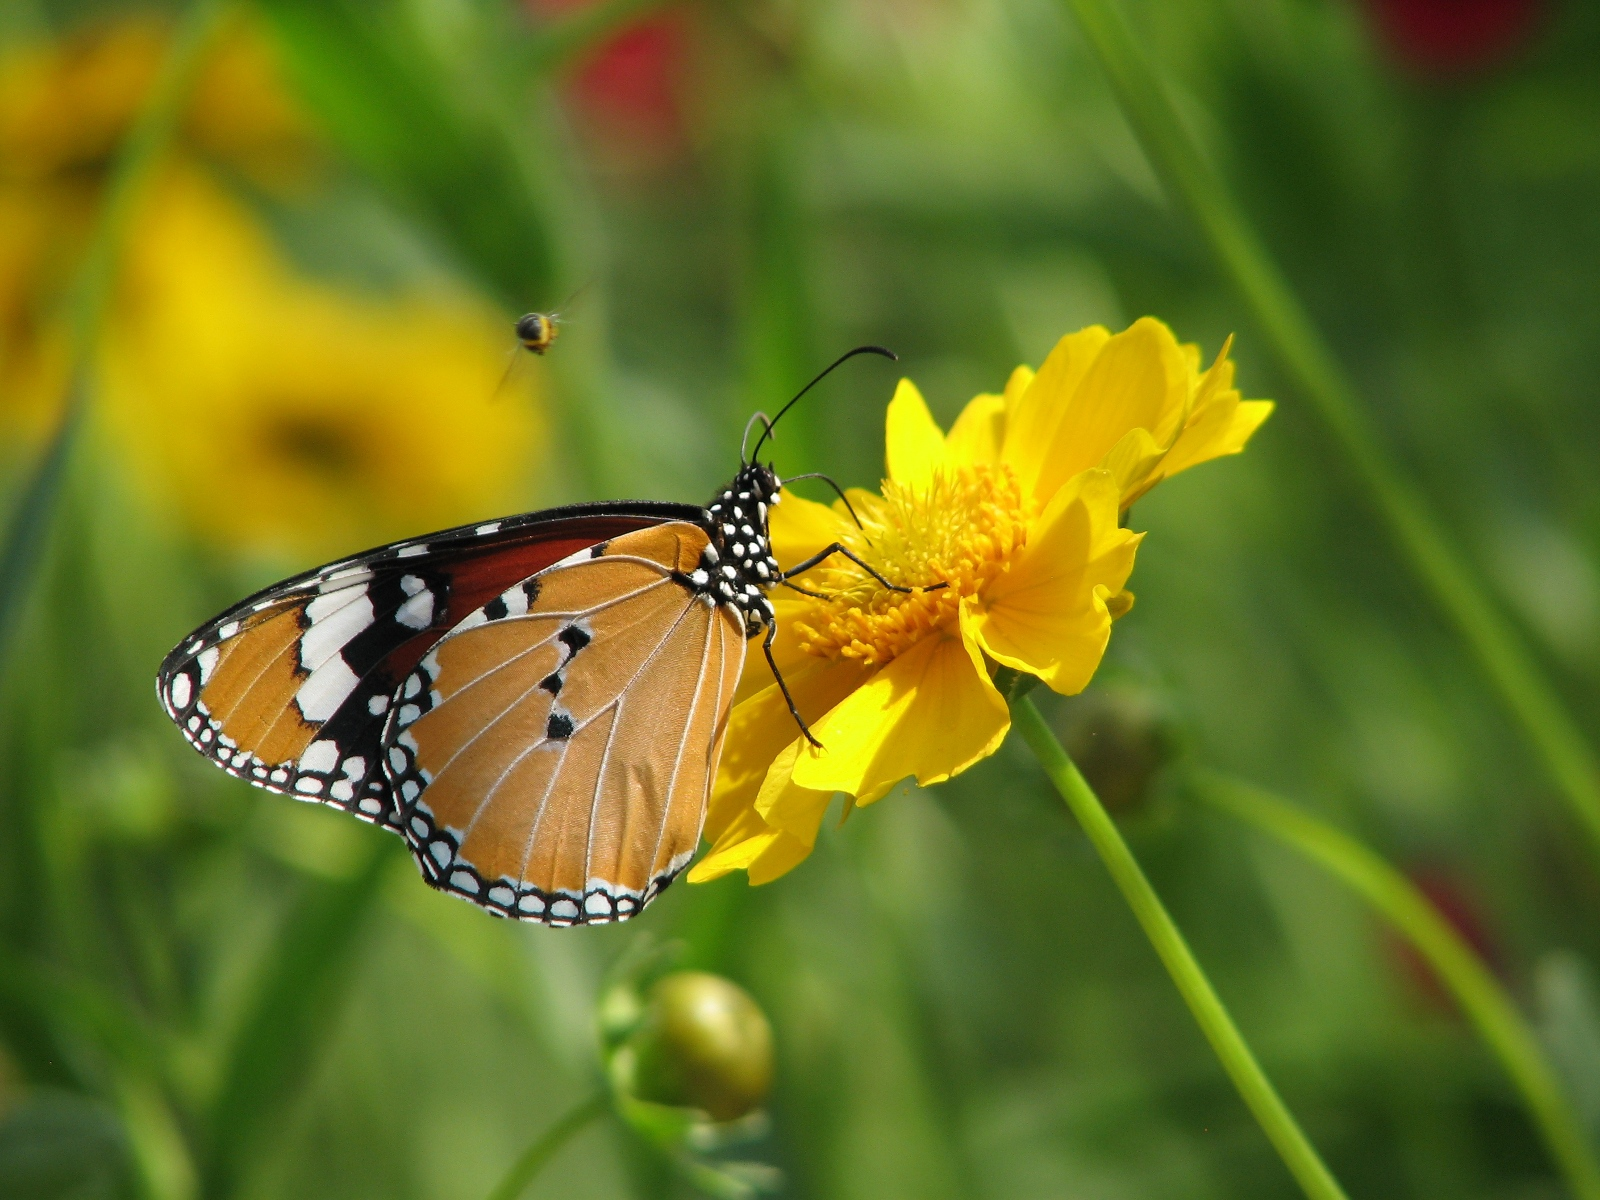 flowers for flower lovers.: HD flowers N butterfly desktop wallpapers.